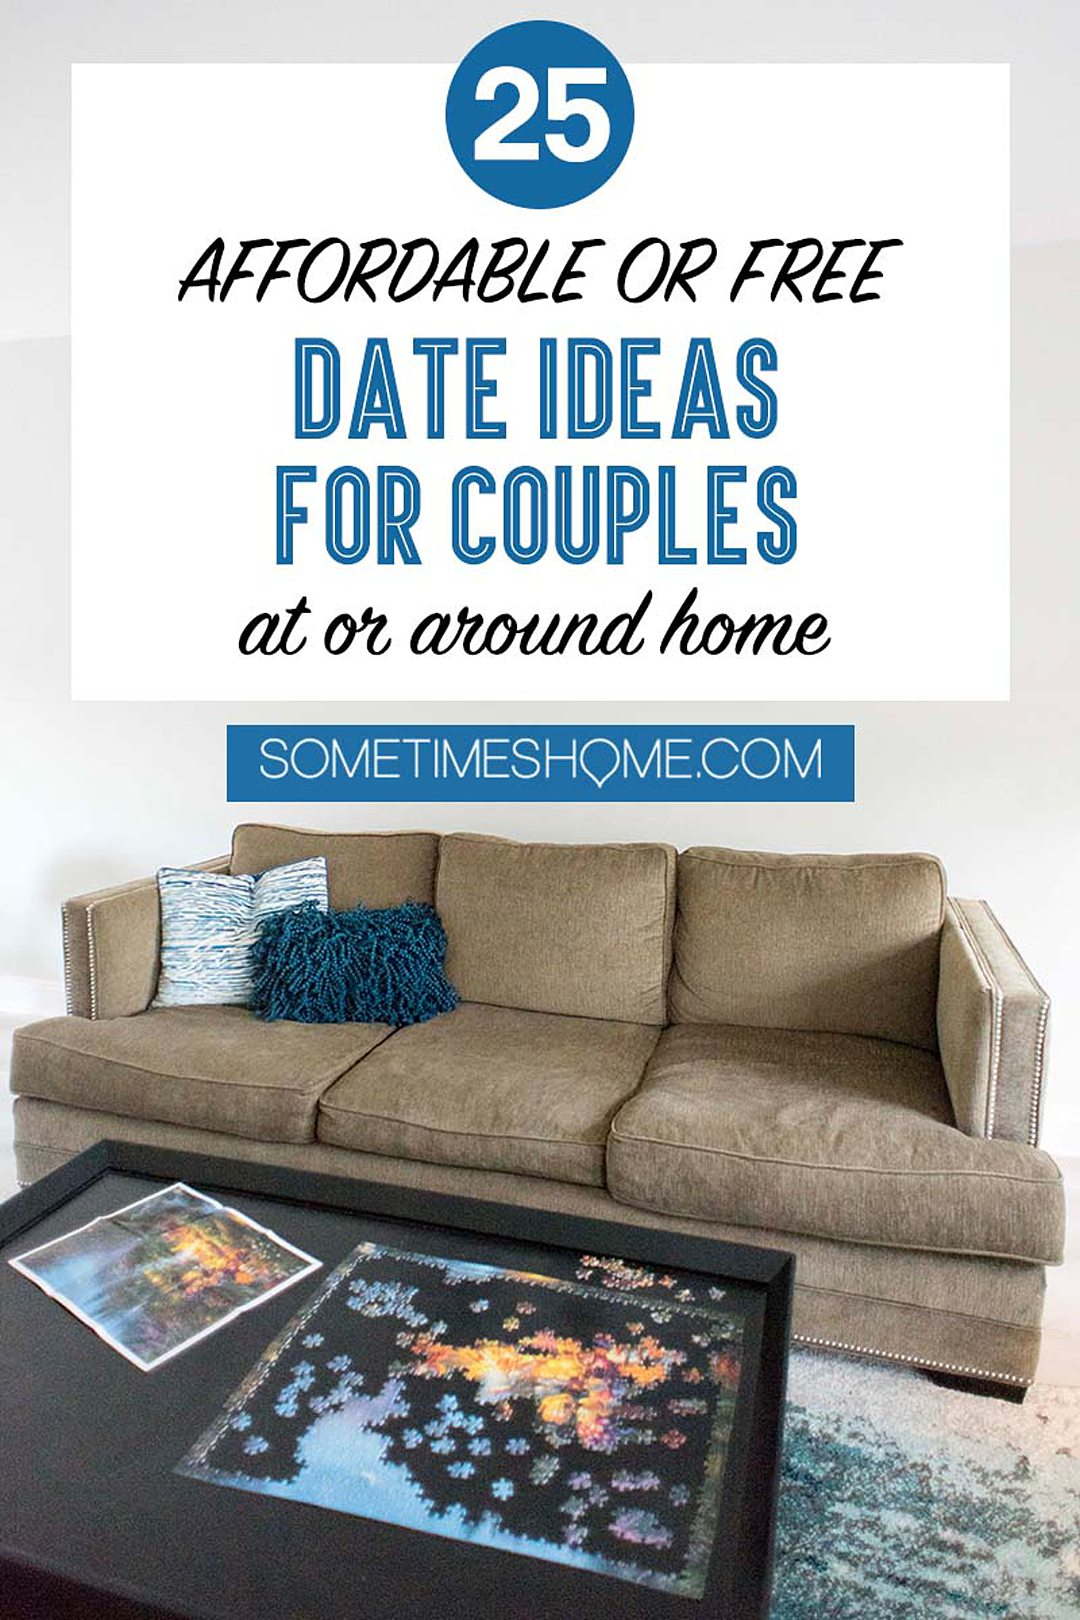 Pinterest graphic for a blog post about 25 date ideas for couples at or around home.